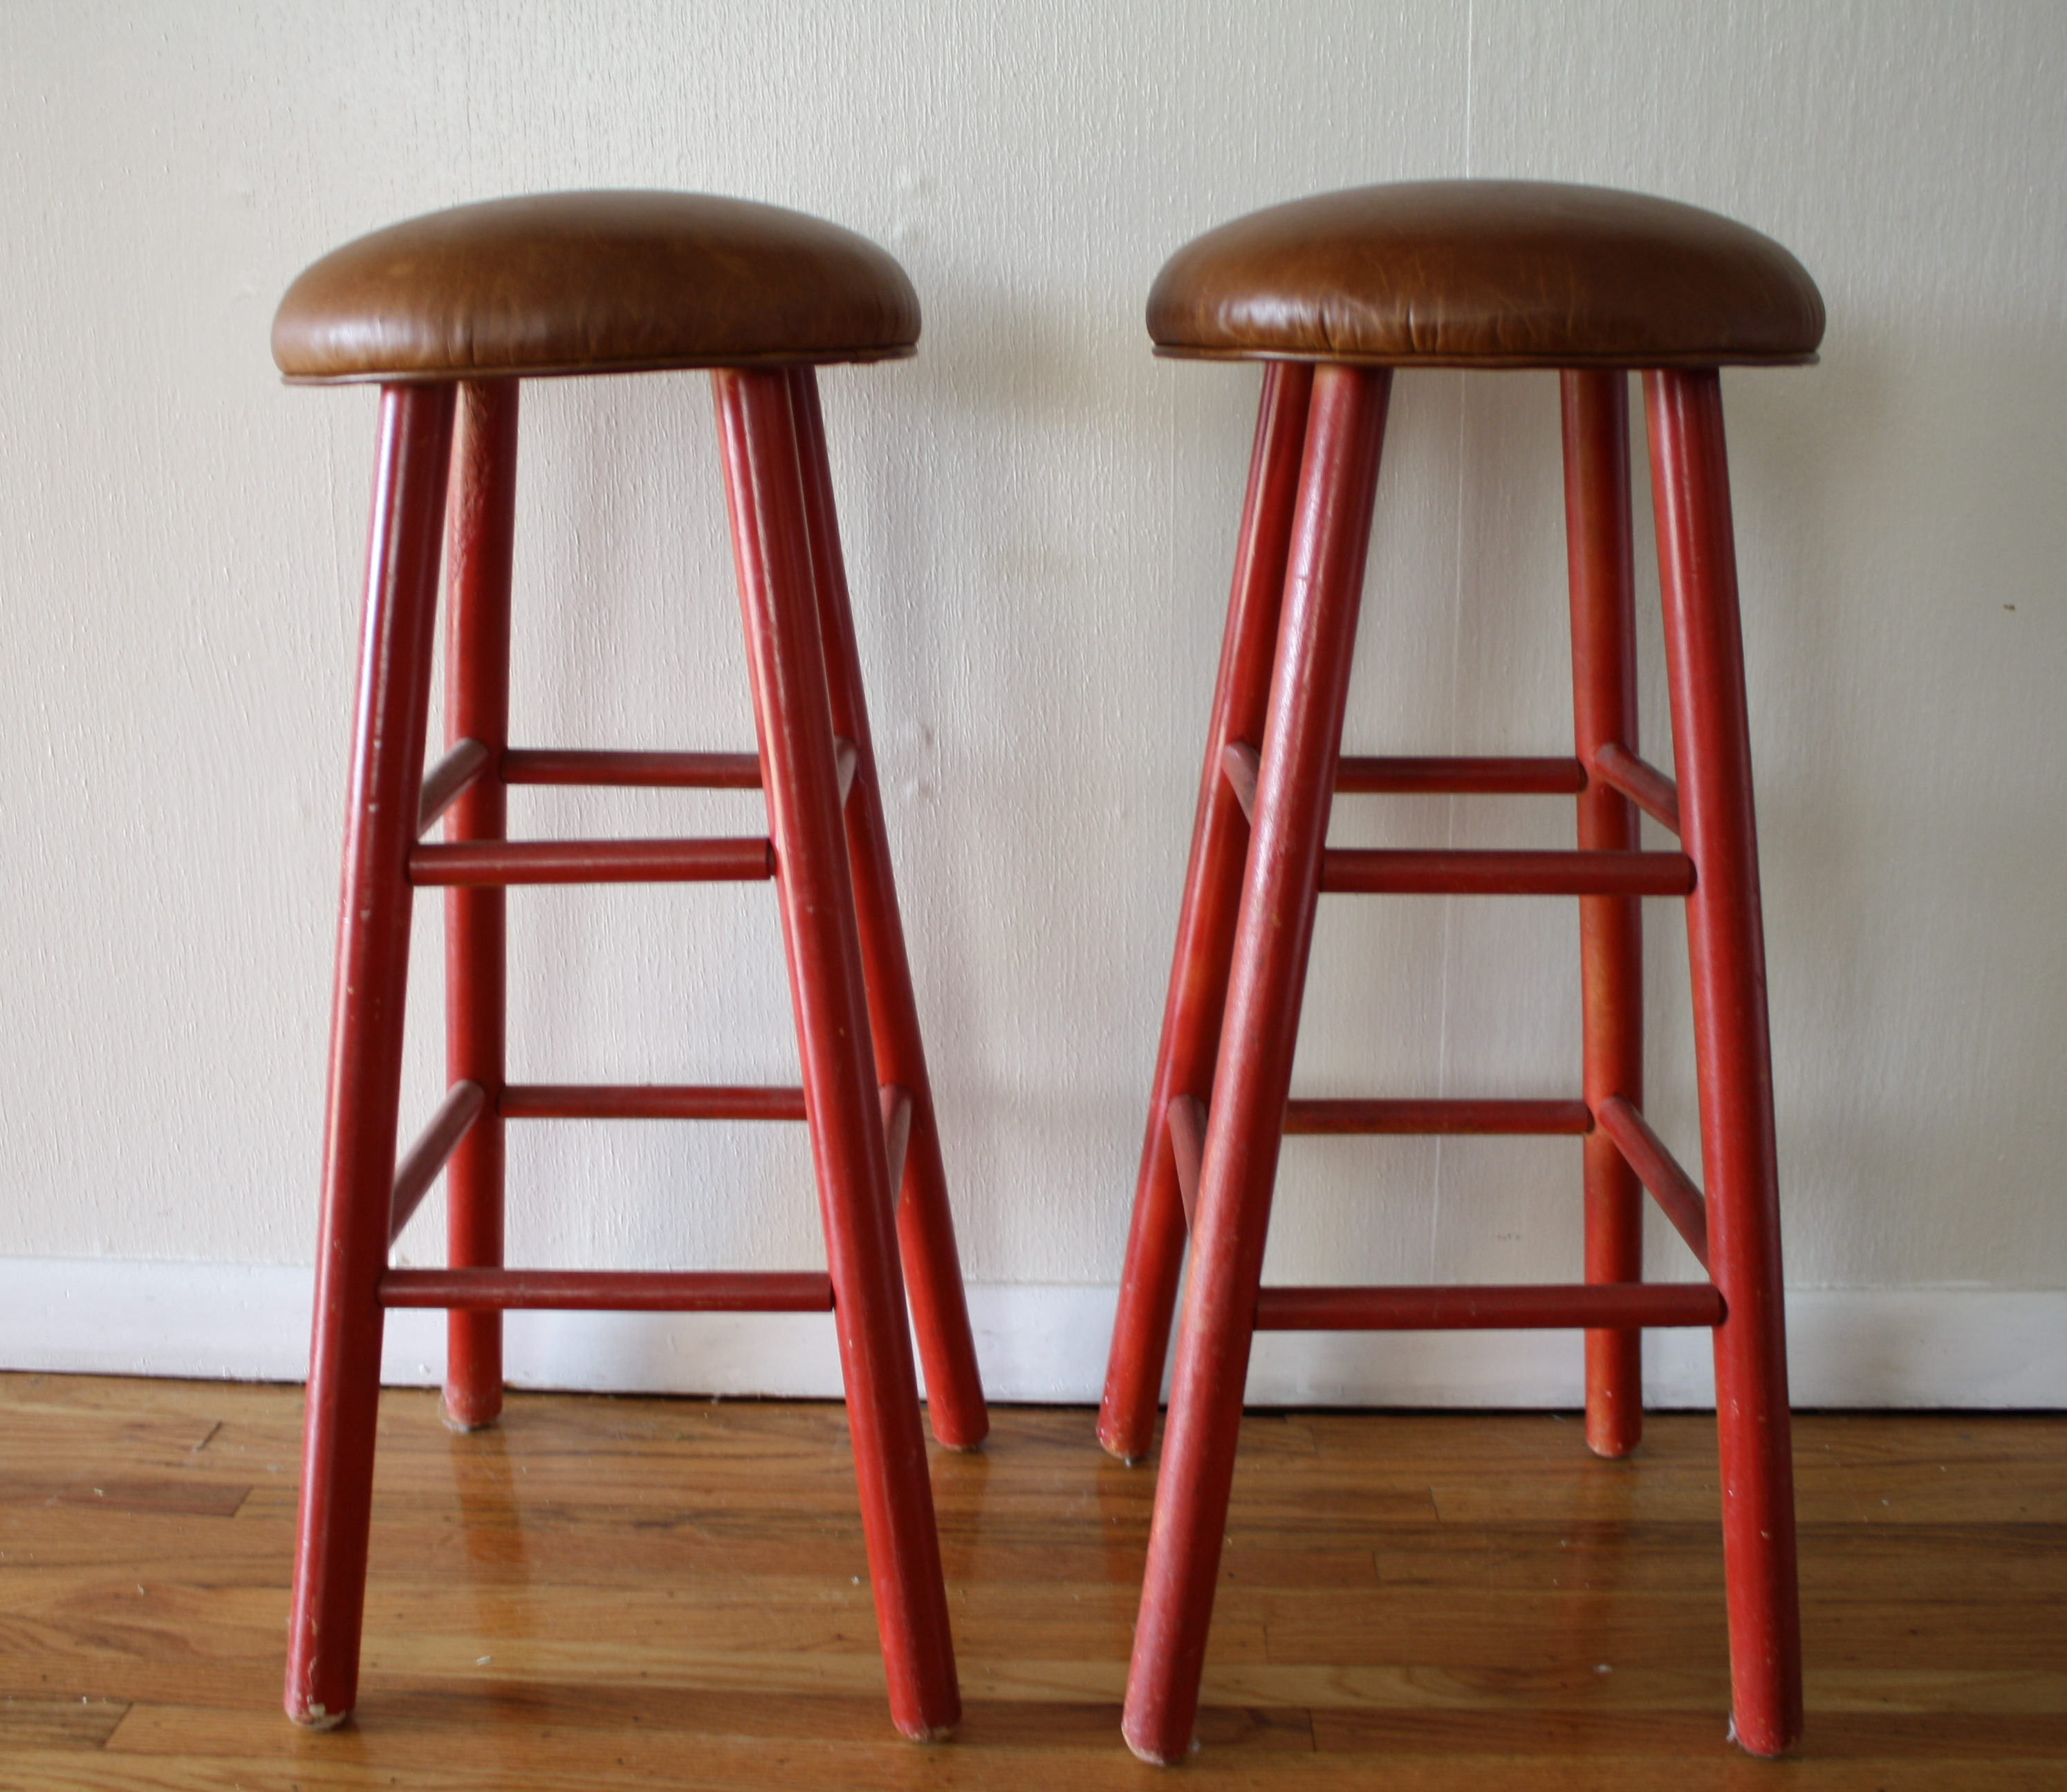 Antique Farm Stools With Soft Brown Leather Seats Picked